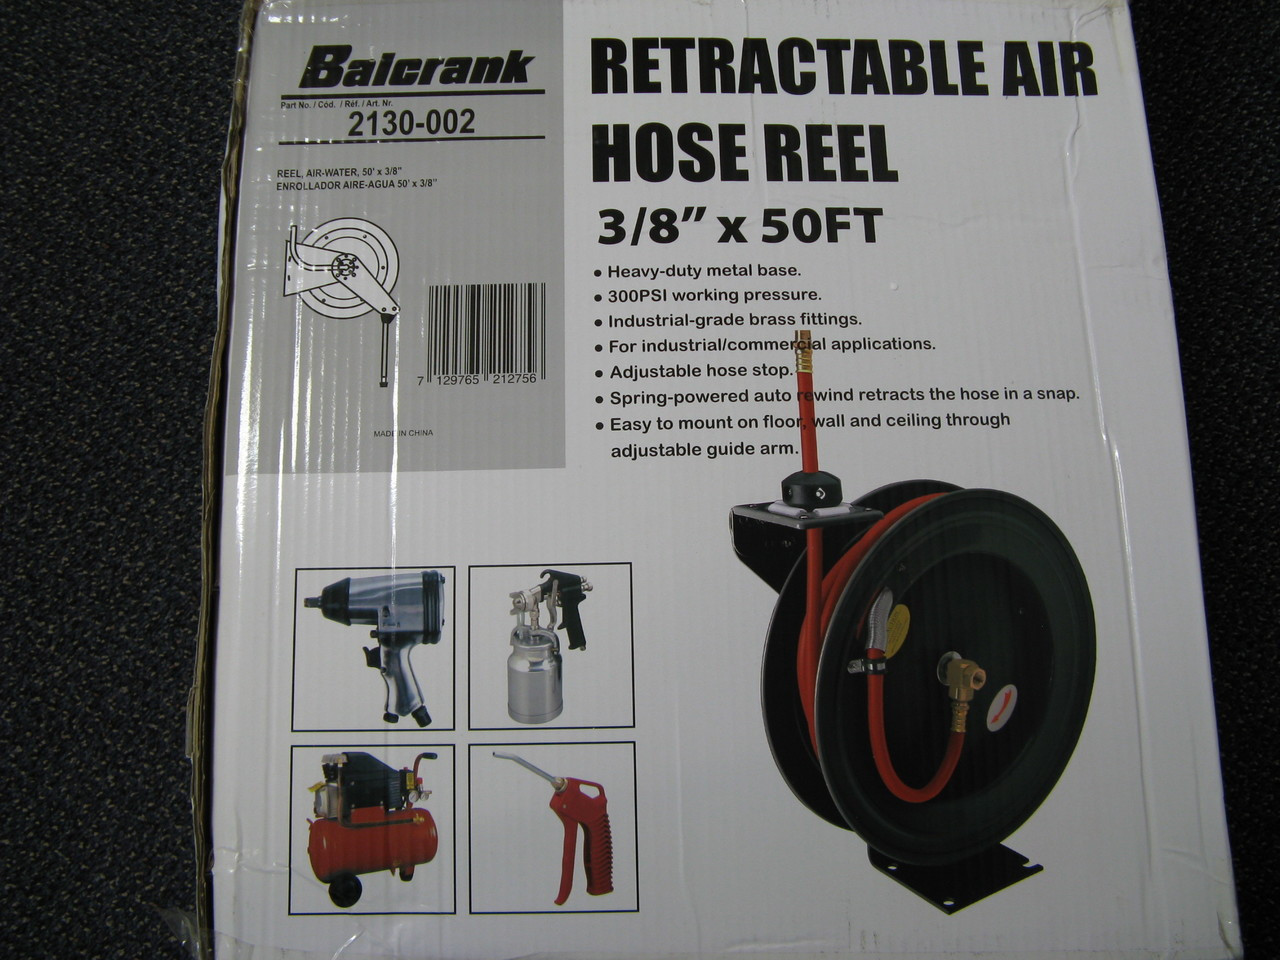 "2130-002 Balcrank Air Hose Reel 3/8"" x 50'"